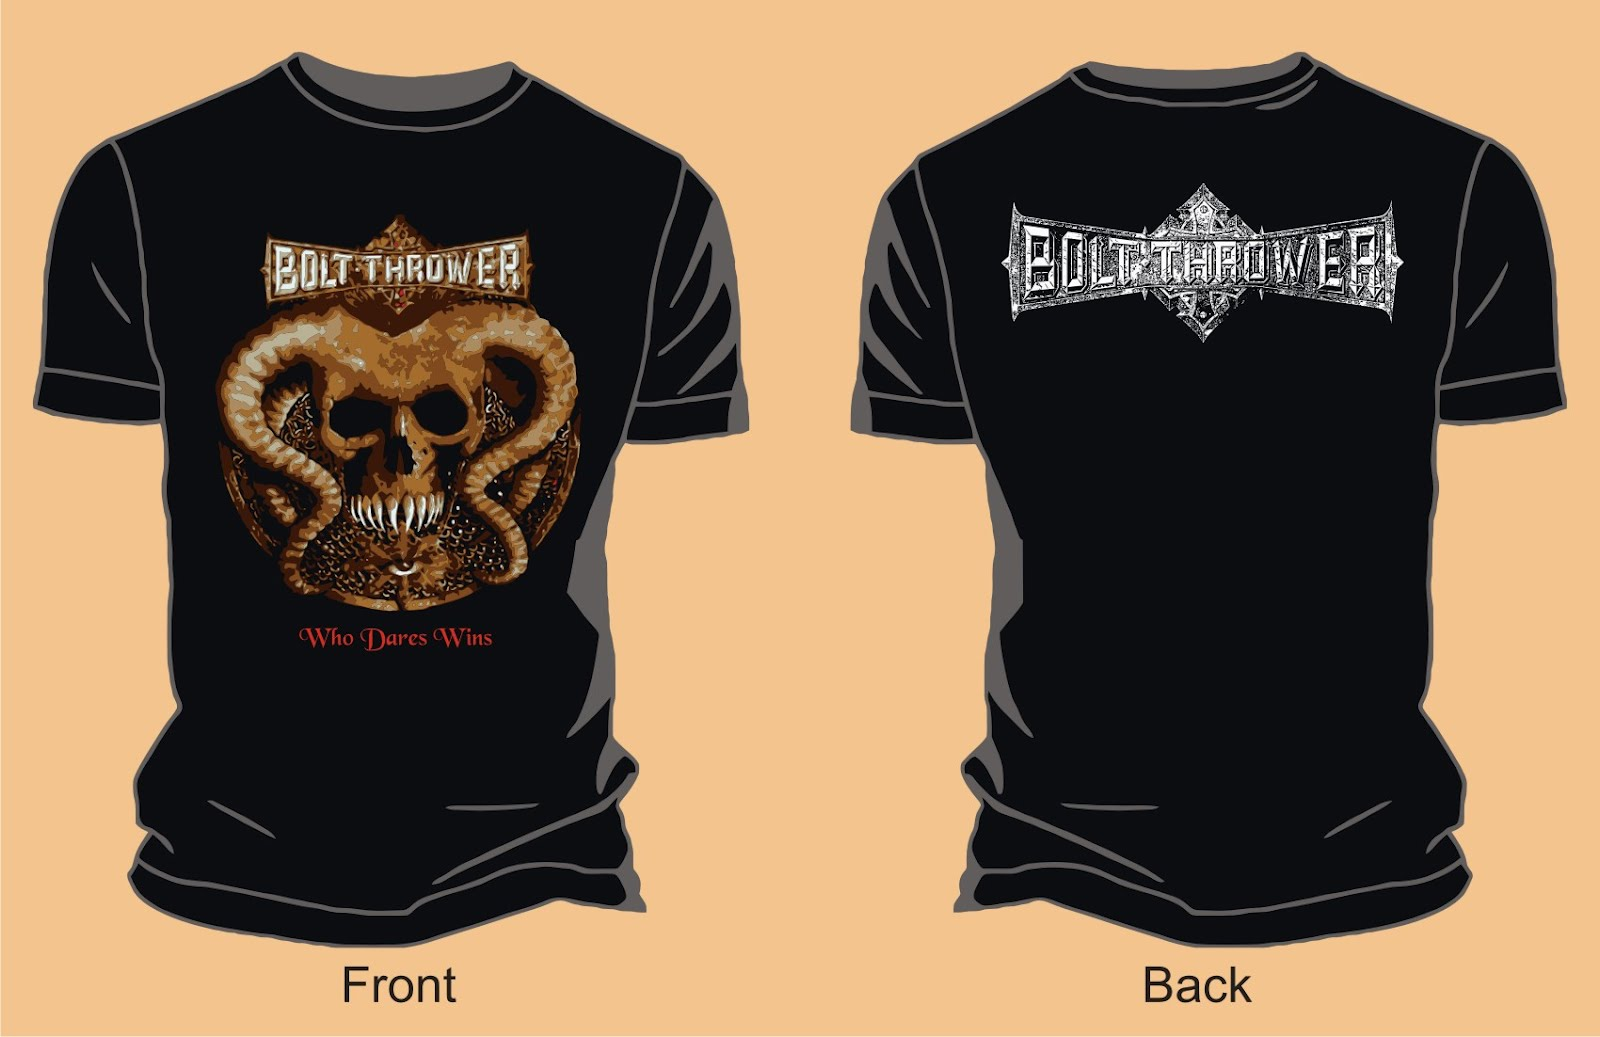 bolt_thrower-who_dares_wins_vector